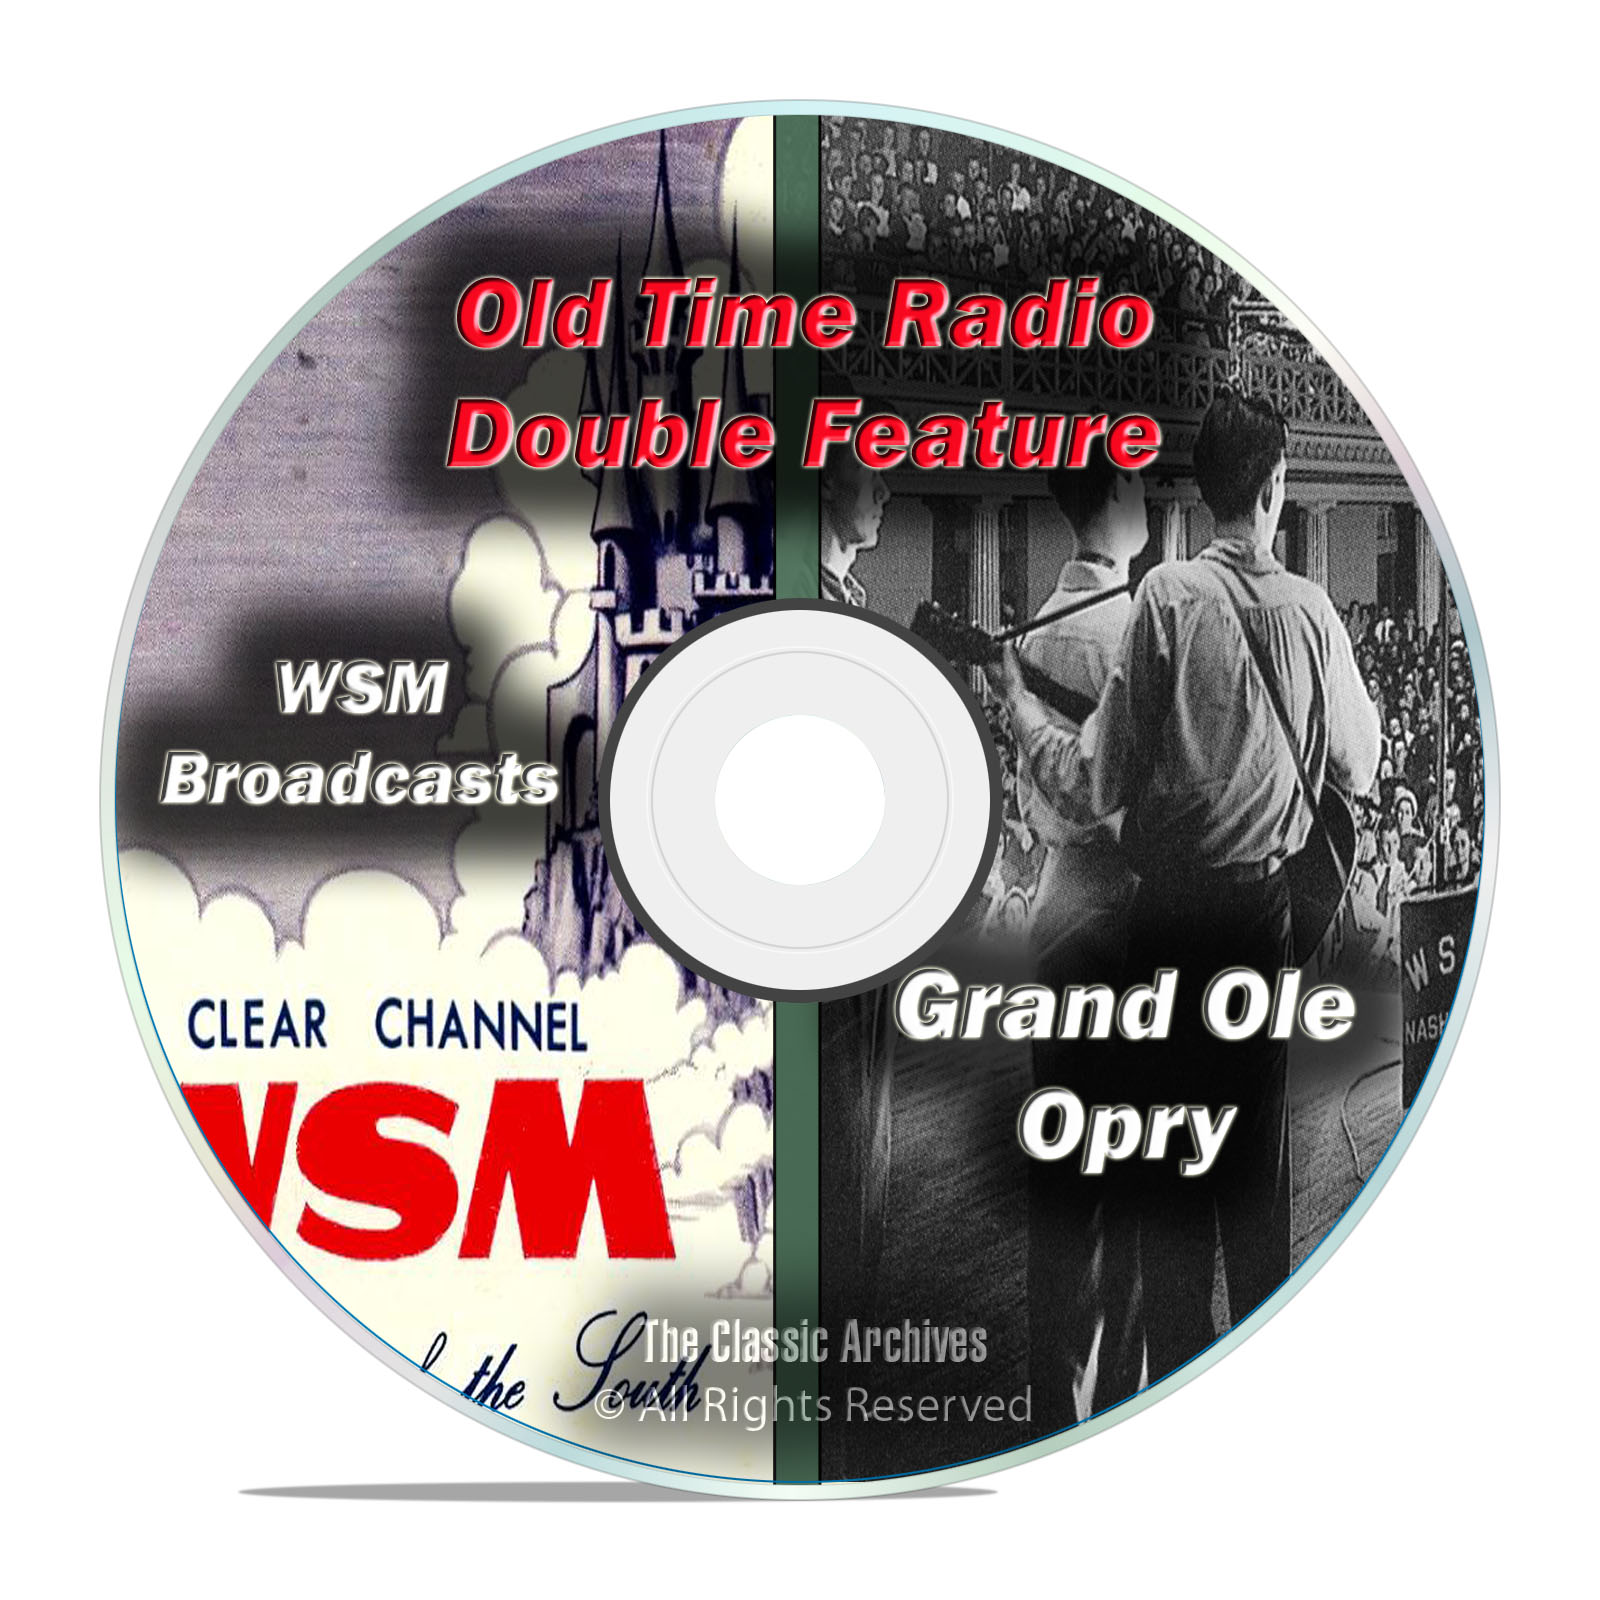 The Grand Ole Opry, 440 CLASSIC EPISODES, Music Old Time Radio, OTR, DVD